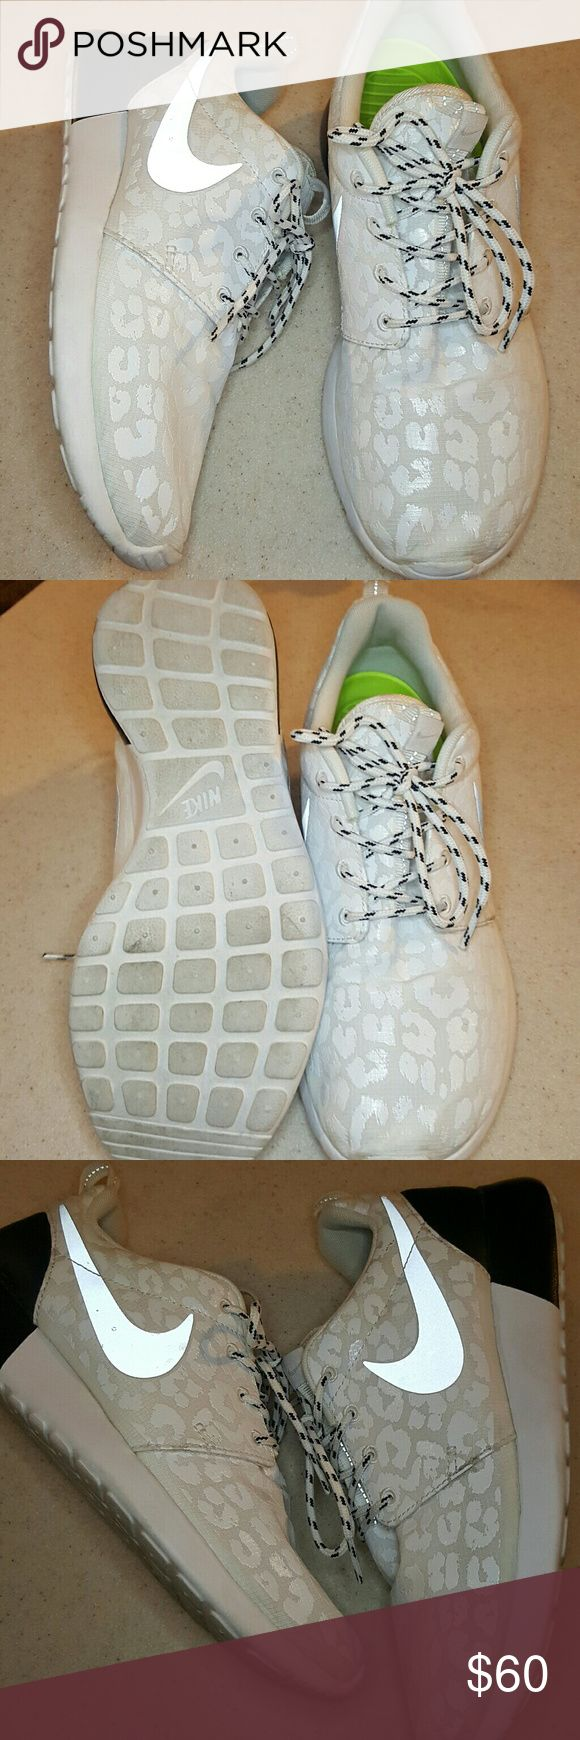 [Nike] Leopard Roshe Run White leopard print with a silver/reflective swoosh. Super clean and barely worn in great condition! The tab on back of left shoe is torn(see last pic). Barely noticeable and probably could fix it if bothered you.   Open to offers! I wanted to keep these but just a little bit too snug for me! Nike Shoes Athletic Shoes